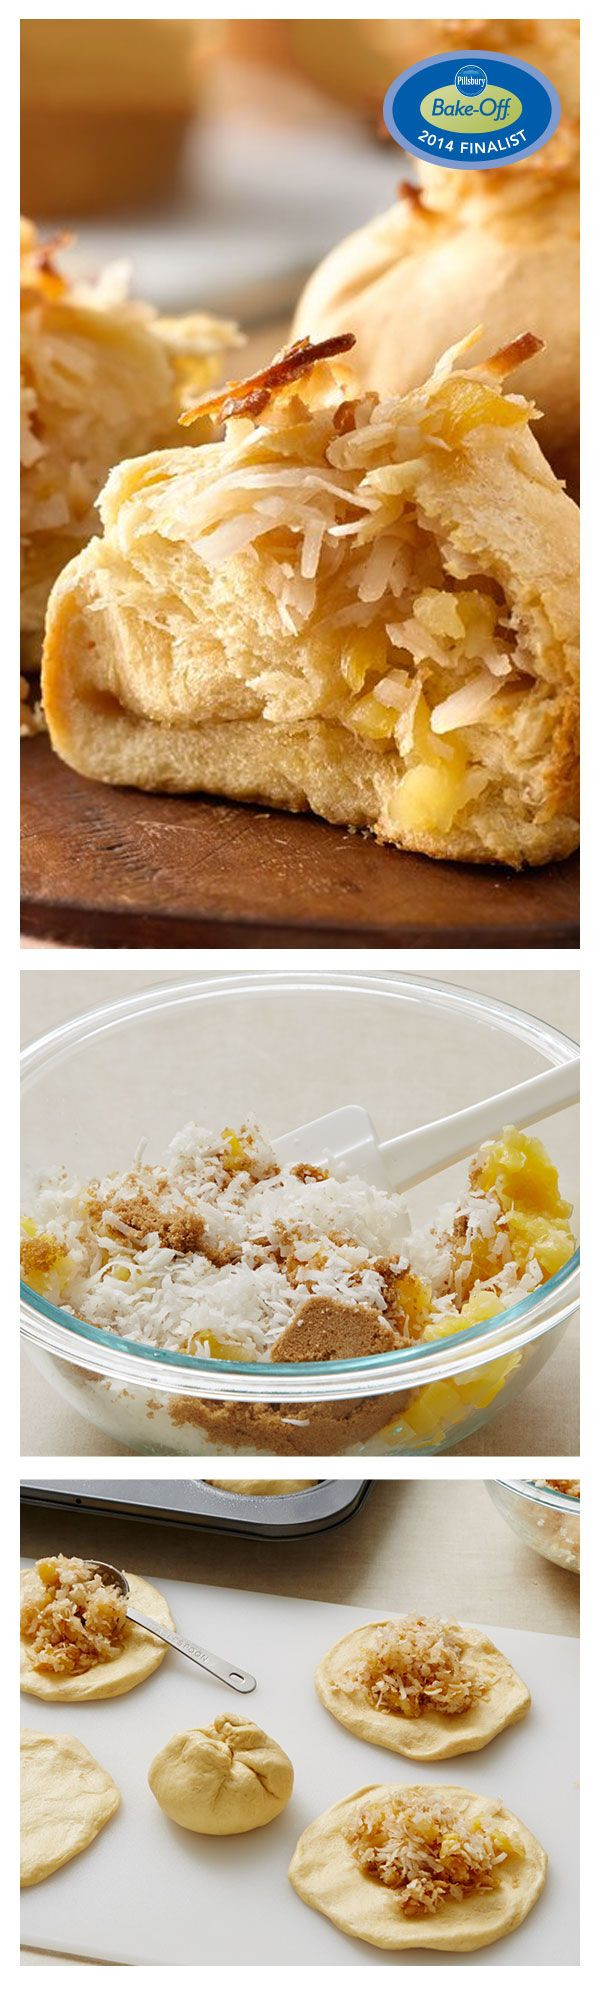 Virginia Bread And Breakfast  17 Best images about Bread Stuffed Filled on Pinterest